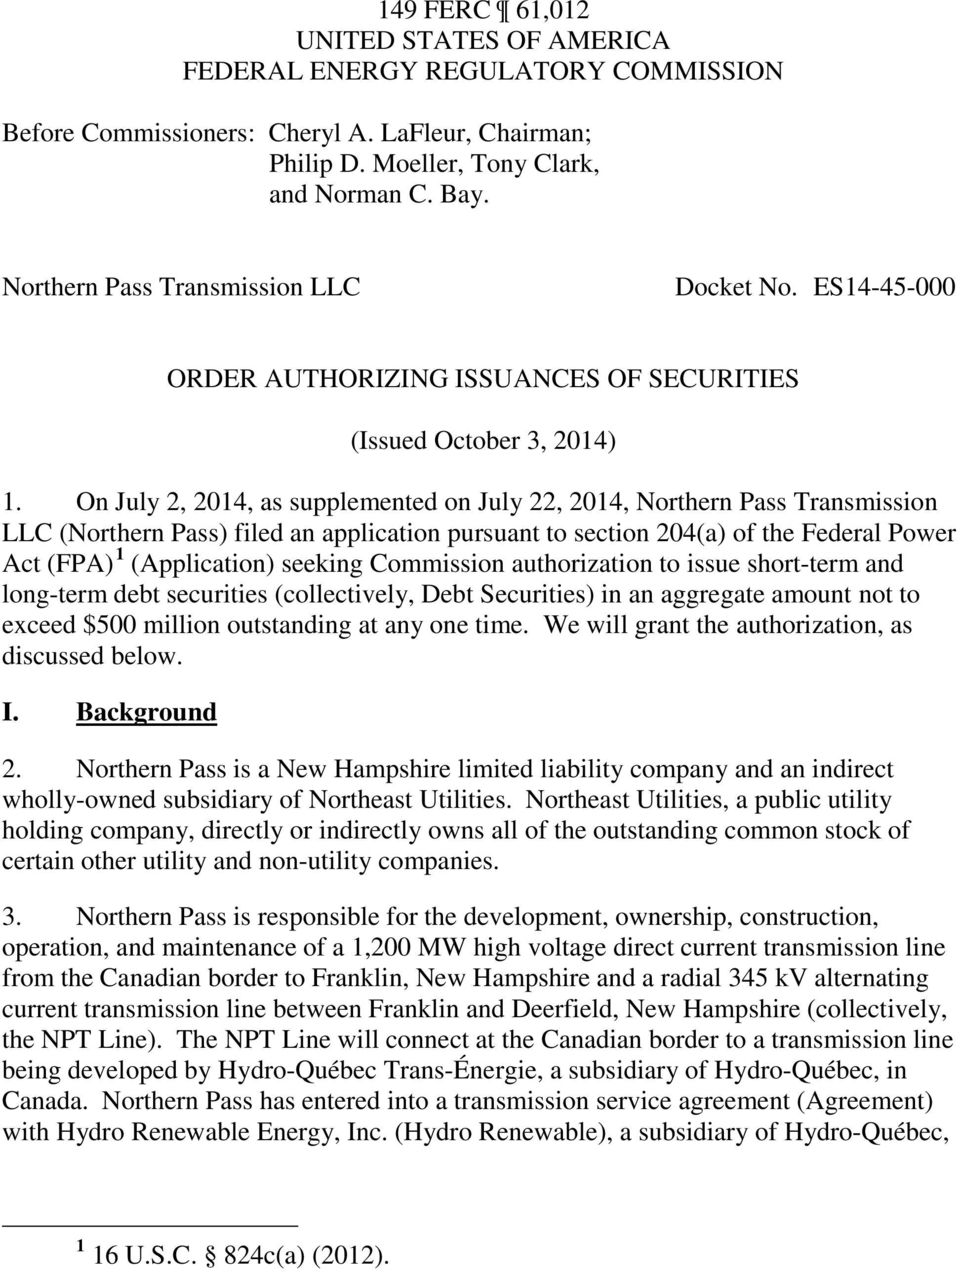 On July 2, 2014, as supplemented on July 22, 2014, Northern Pass Transmission LLC (Northern Pass) filed an application pursuant to section 204(a) of the Federal Power Act (FPA) 1 (Application)